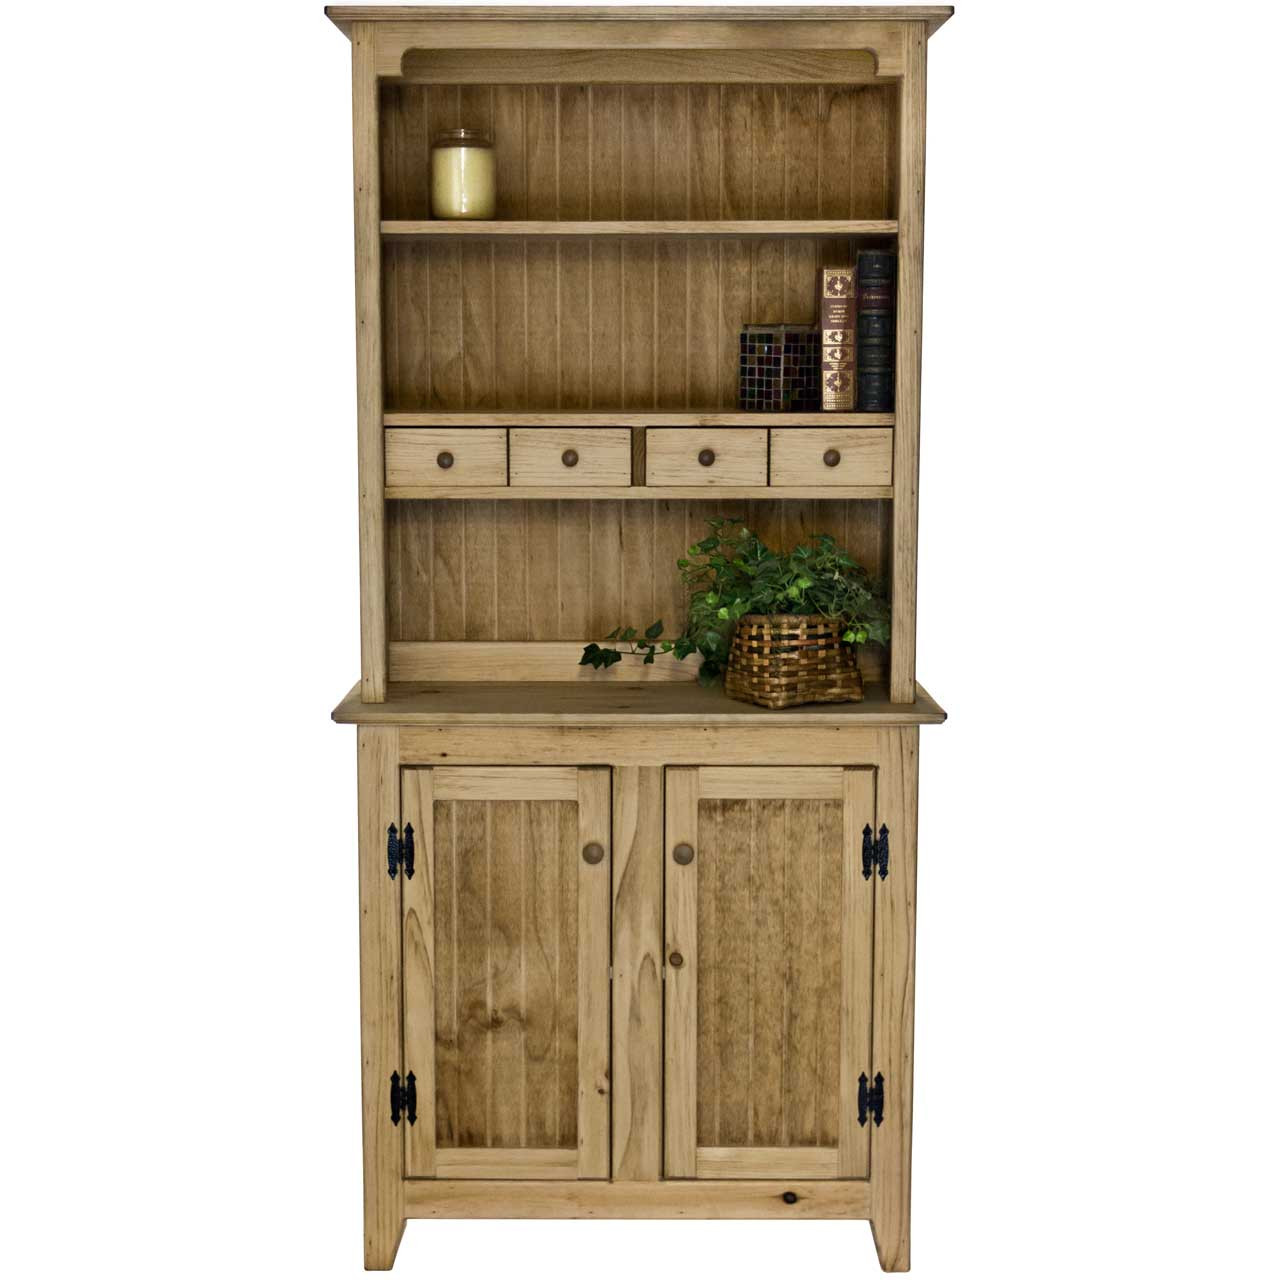 small hutch for kitchen small dining room hutch. Black Bedroom Furniture Sets. Home Design Ideas